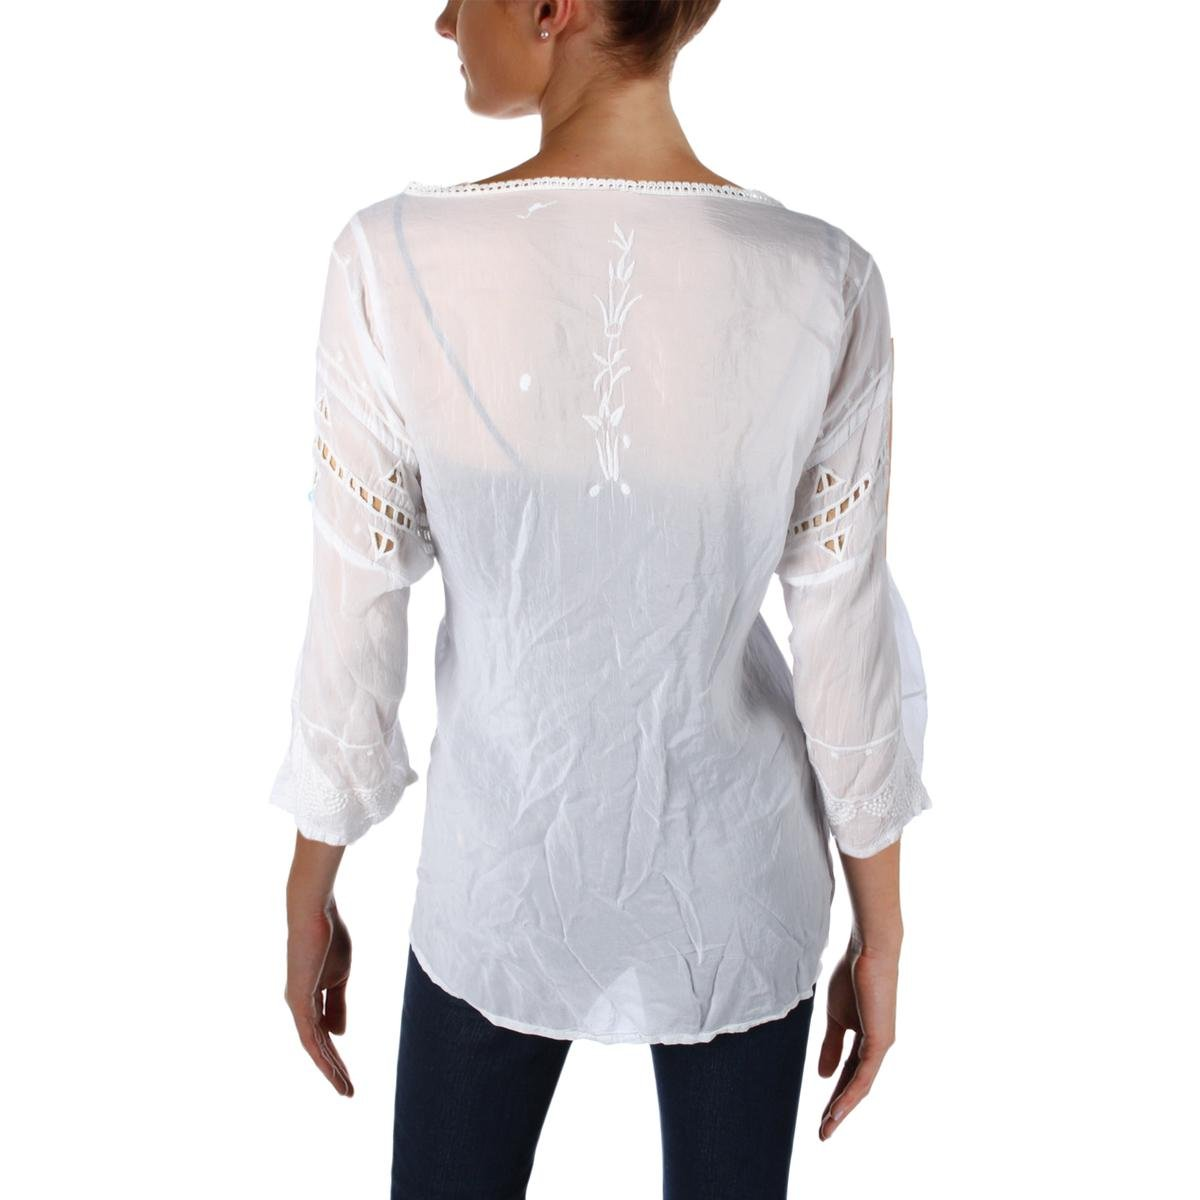 Johnny Was Womens Battenburg Lace Embroidered Casual Top White M by Johnny Was (Image #2)